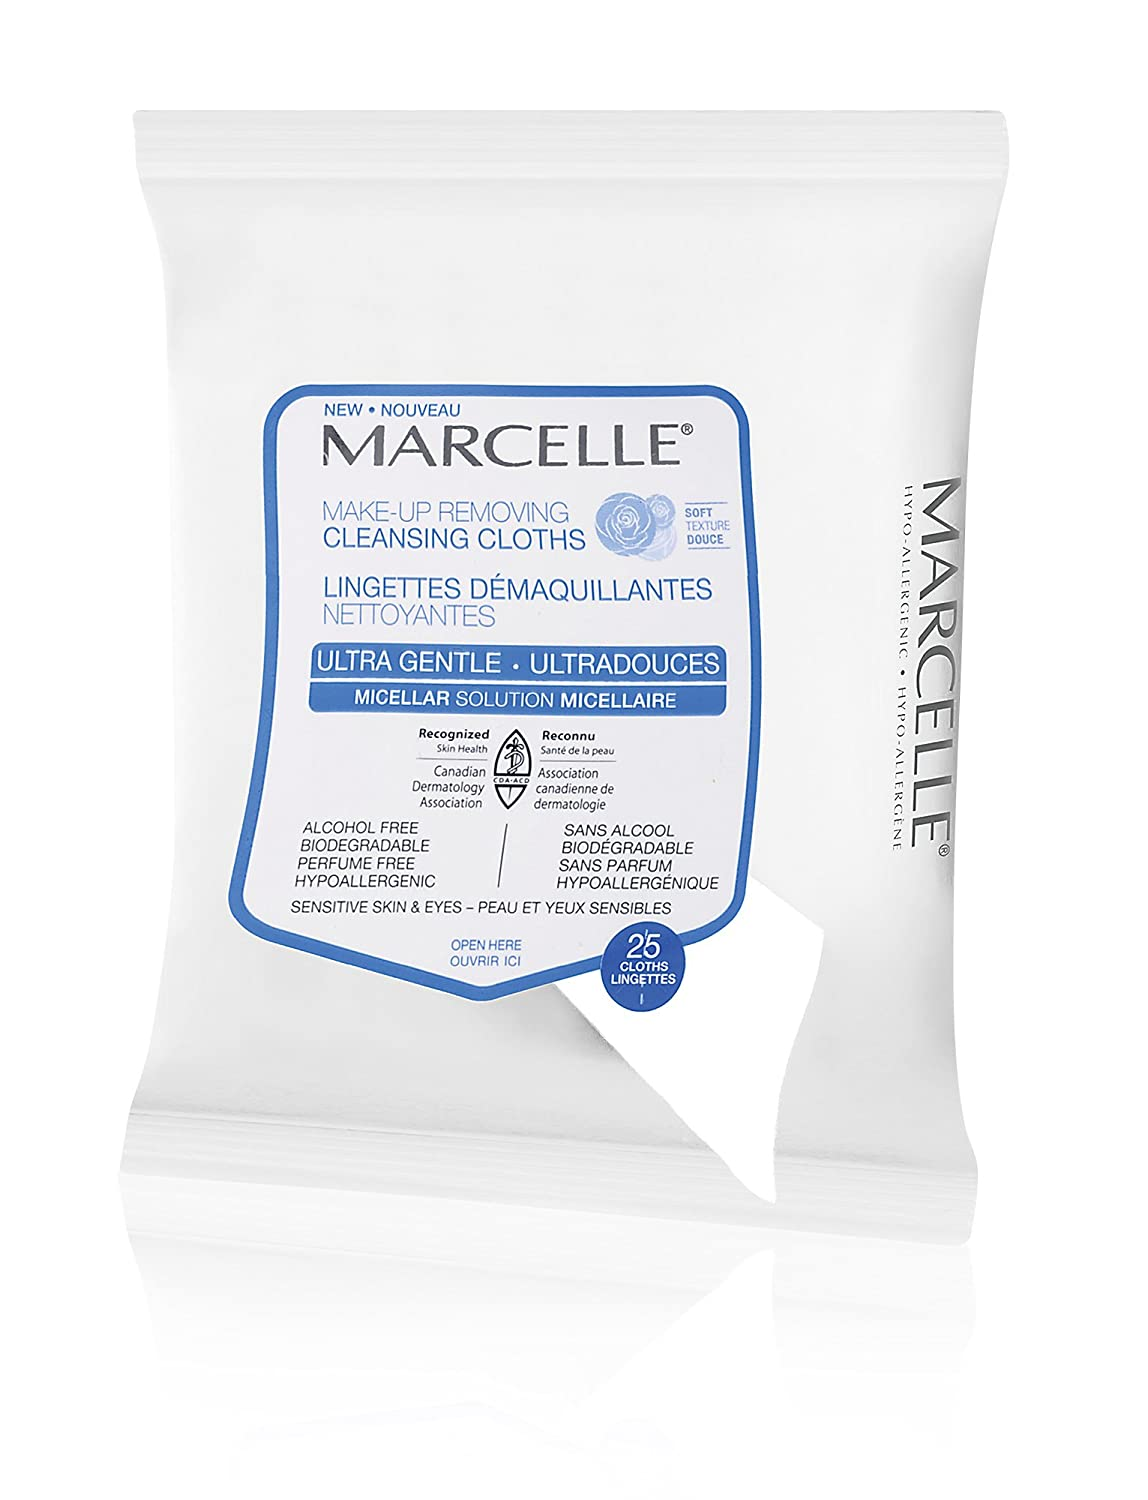 Marcelle Ultra-Gentle Makeup-Removing Cleansing Cloths, Hypoallergenic and Fragrance-Free, 25 cloths Marcelle group - Beauty 174015